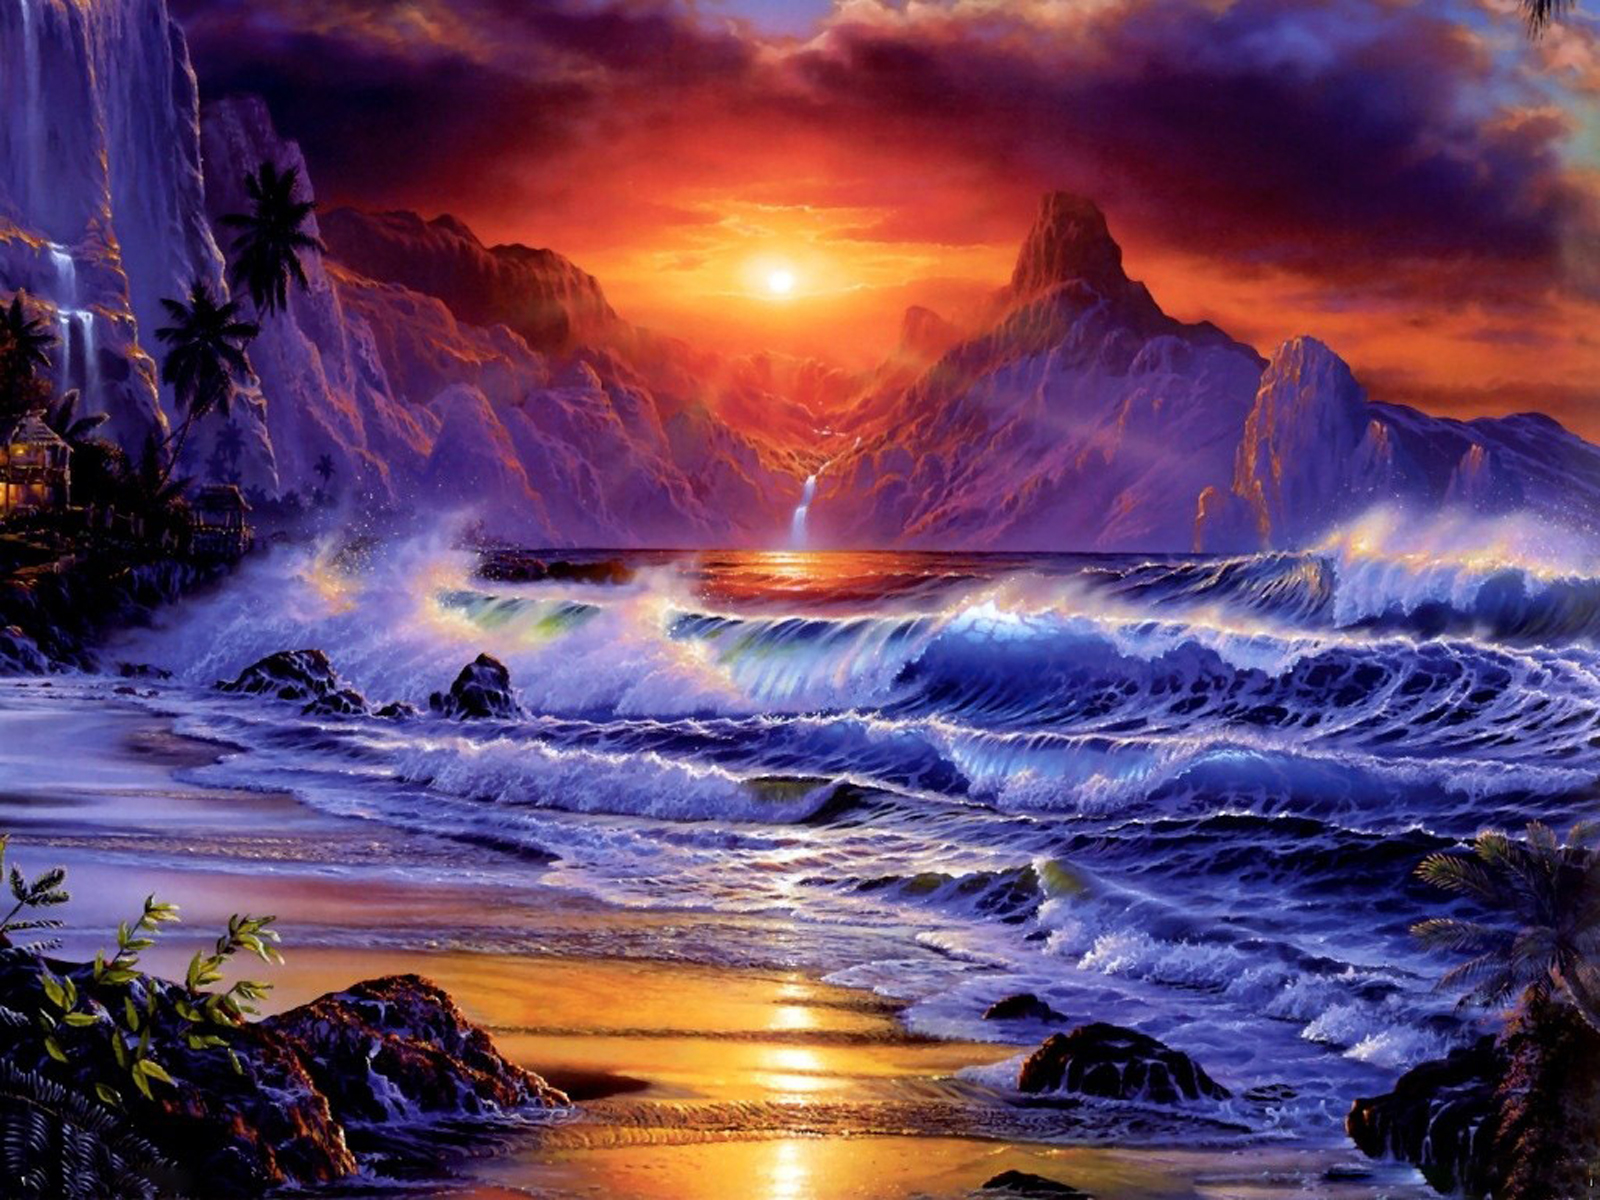 Amazing Fantasy Sunset computer desktop wallpaper 1600x1200